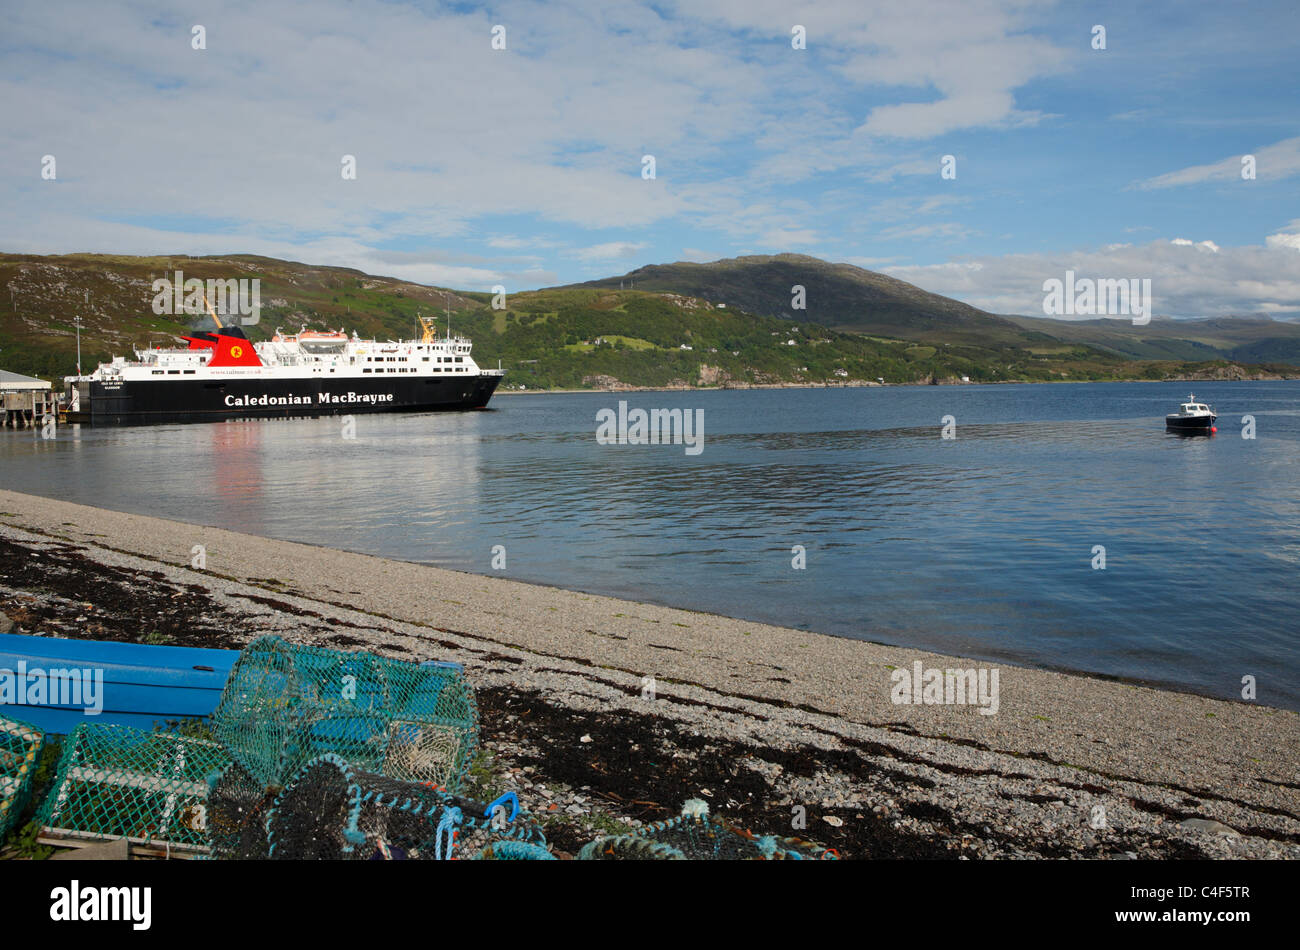 The Caledonian MacBrayne ferry at Ullapool with mountains behind and fishing pots in the foreground - Stock Image